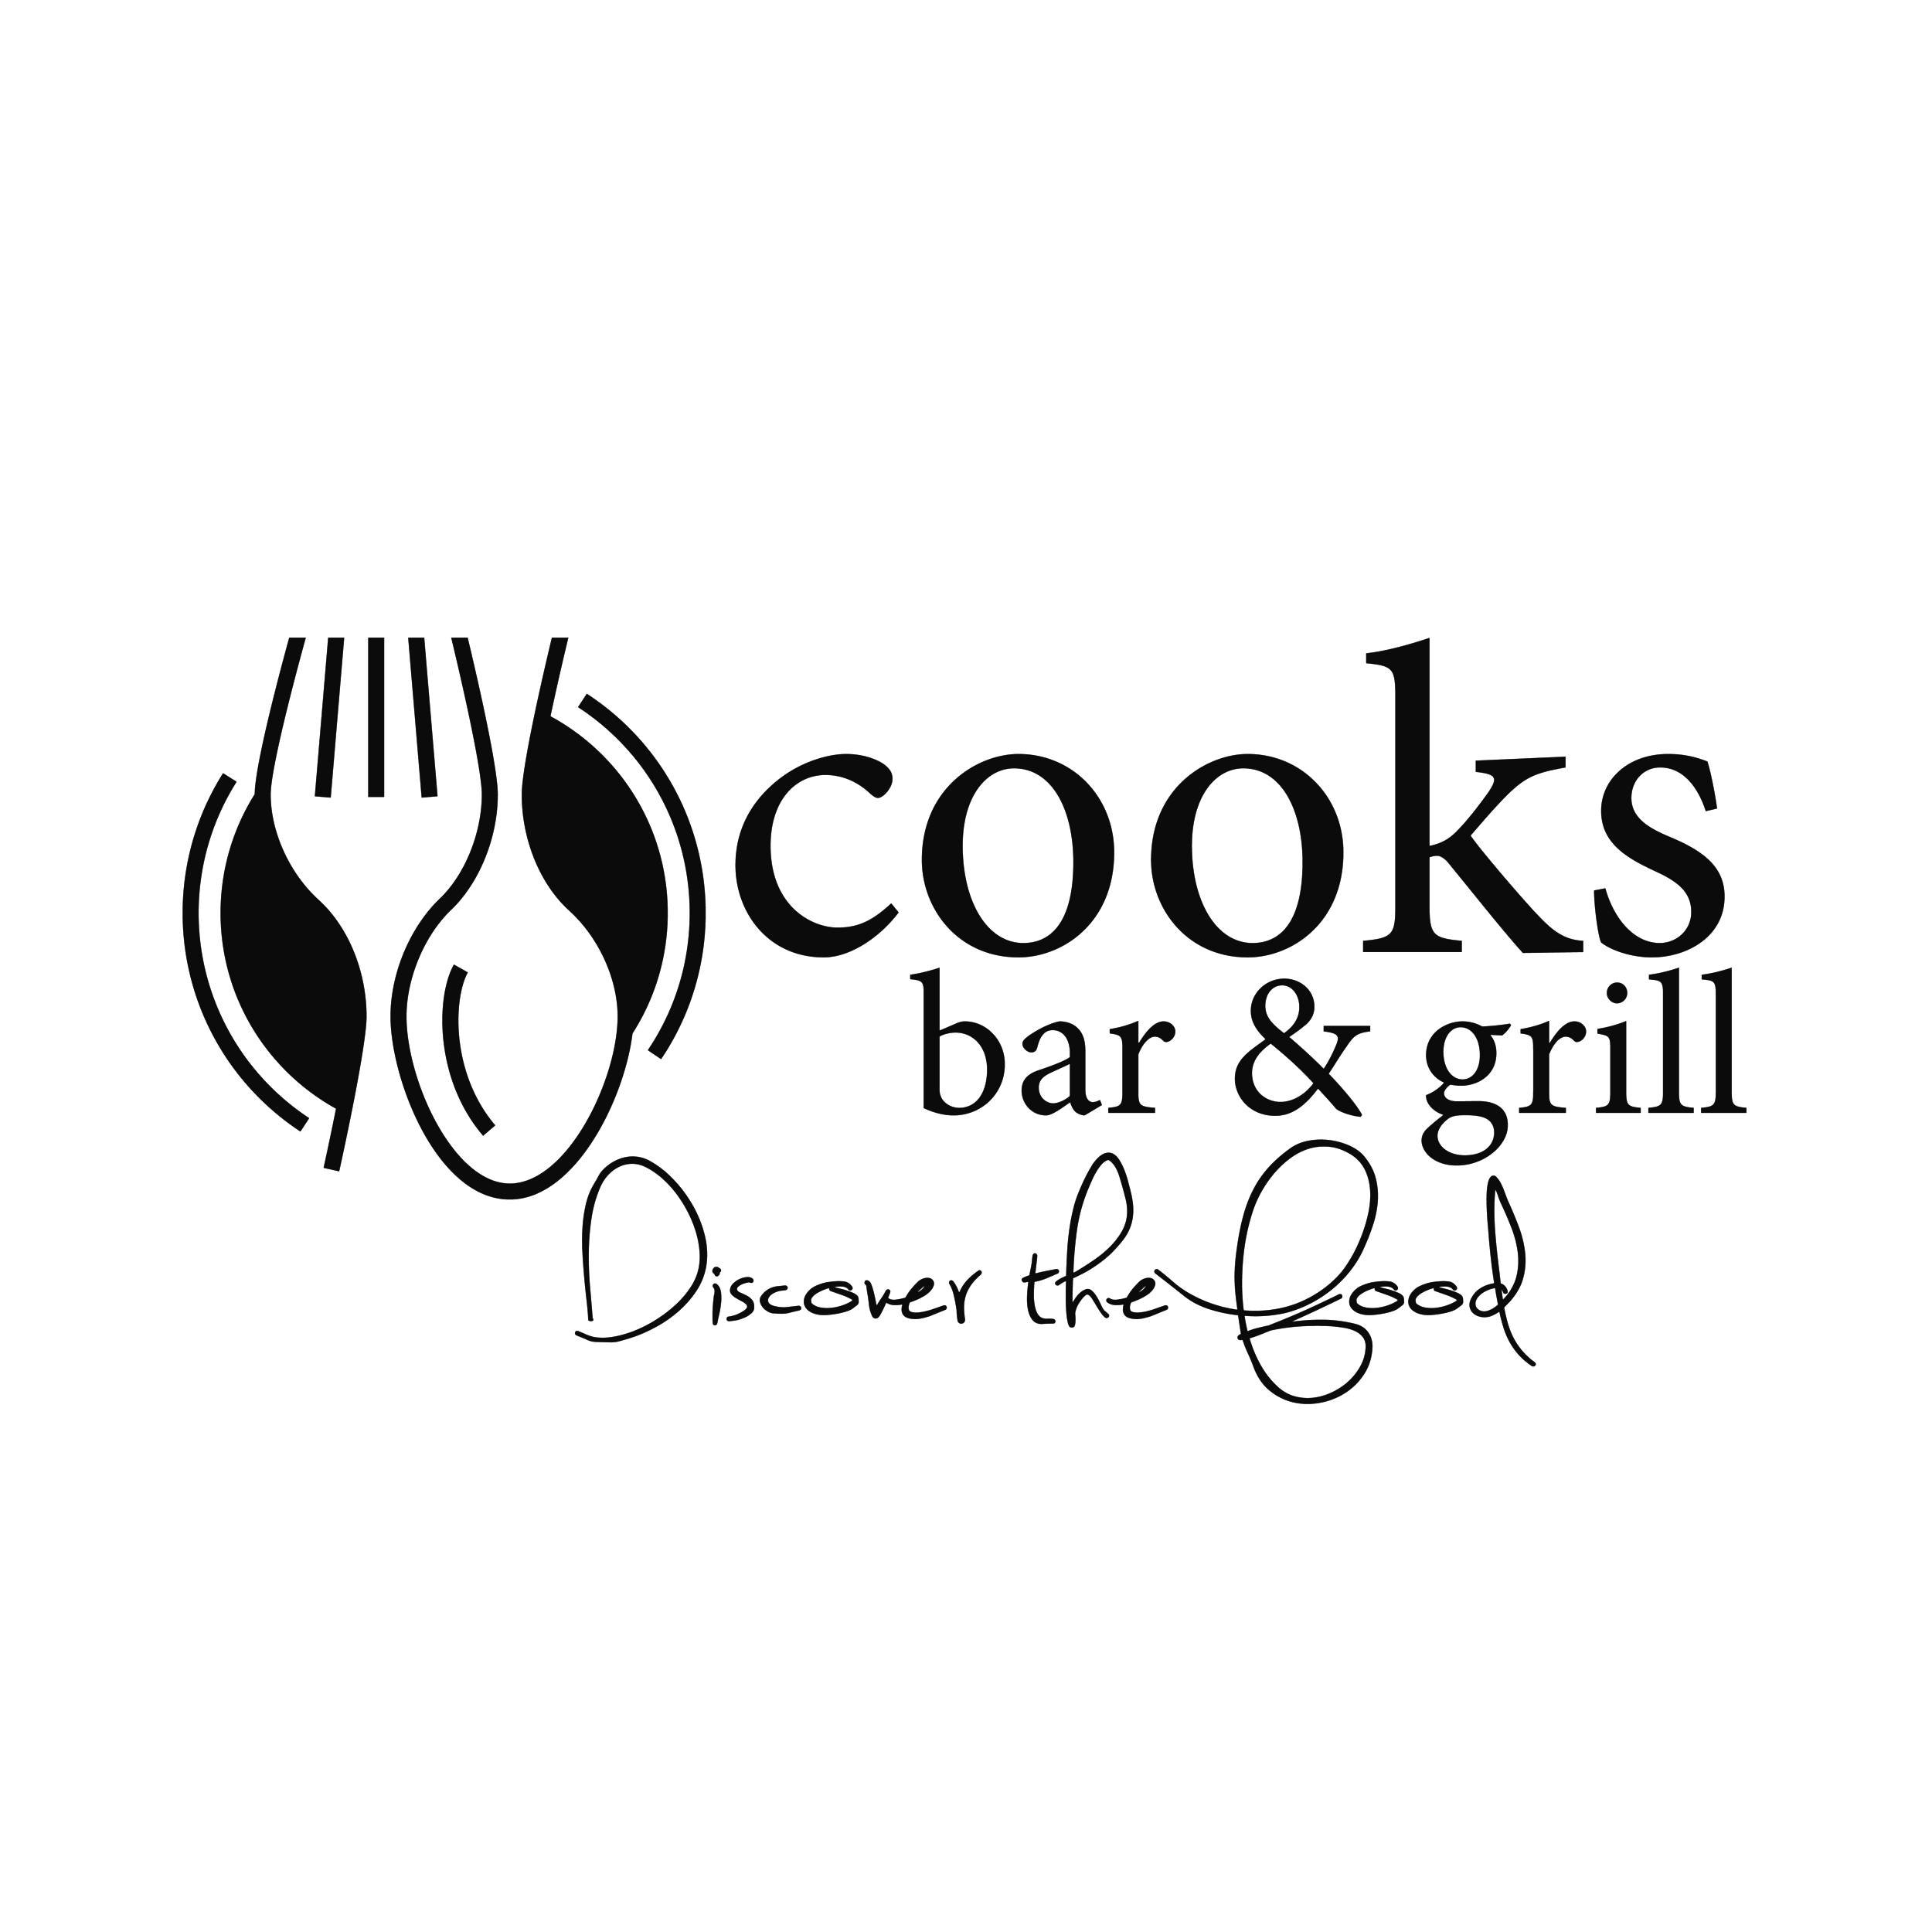 Cooks Bar & Grill